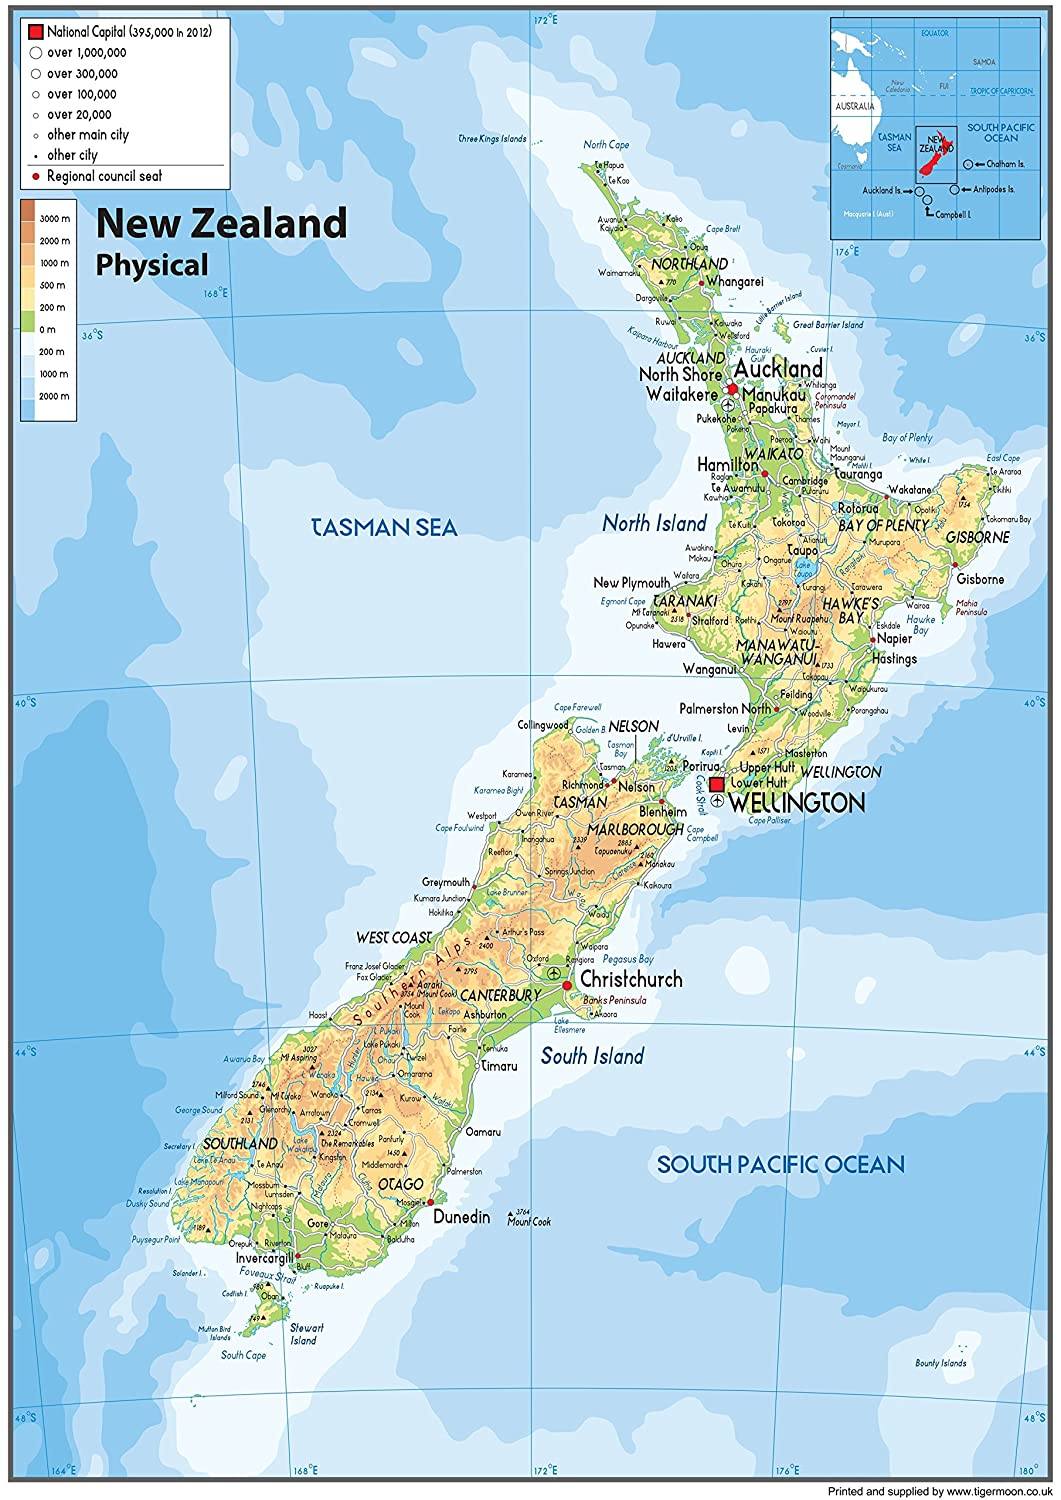 Show Map Of New Zealand.New Zealand Physical Map Paper Laminated A1 Size 59 4 X 84 1 Cm